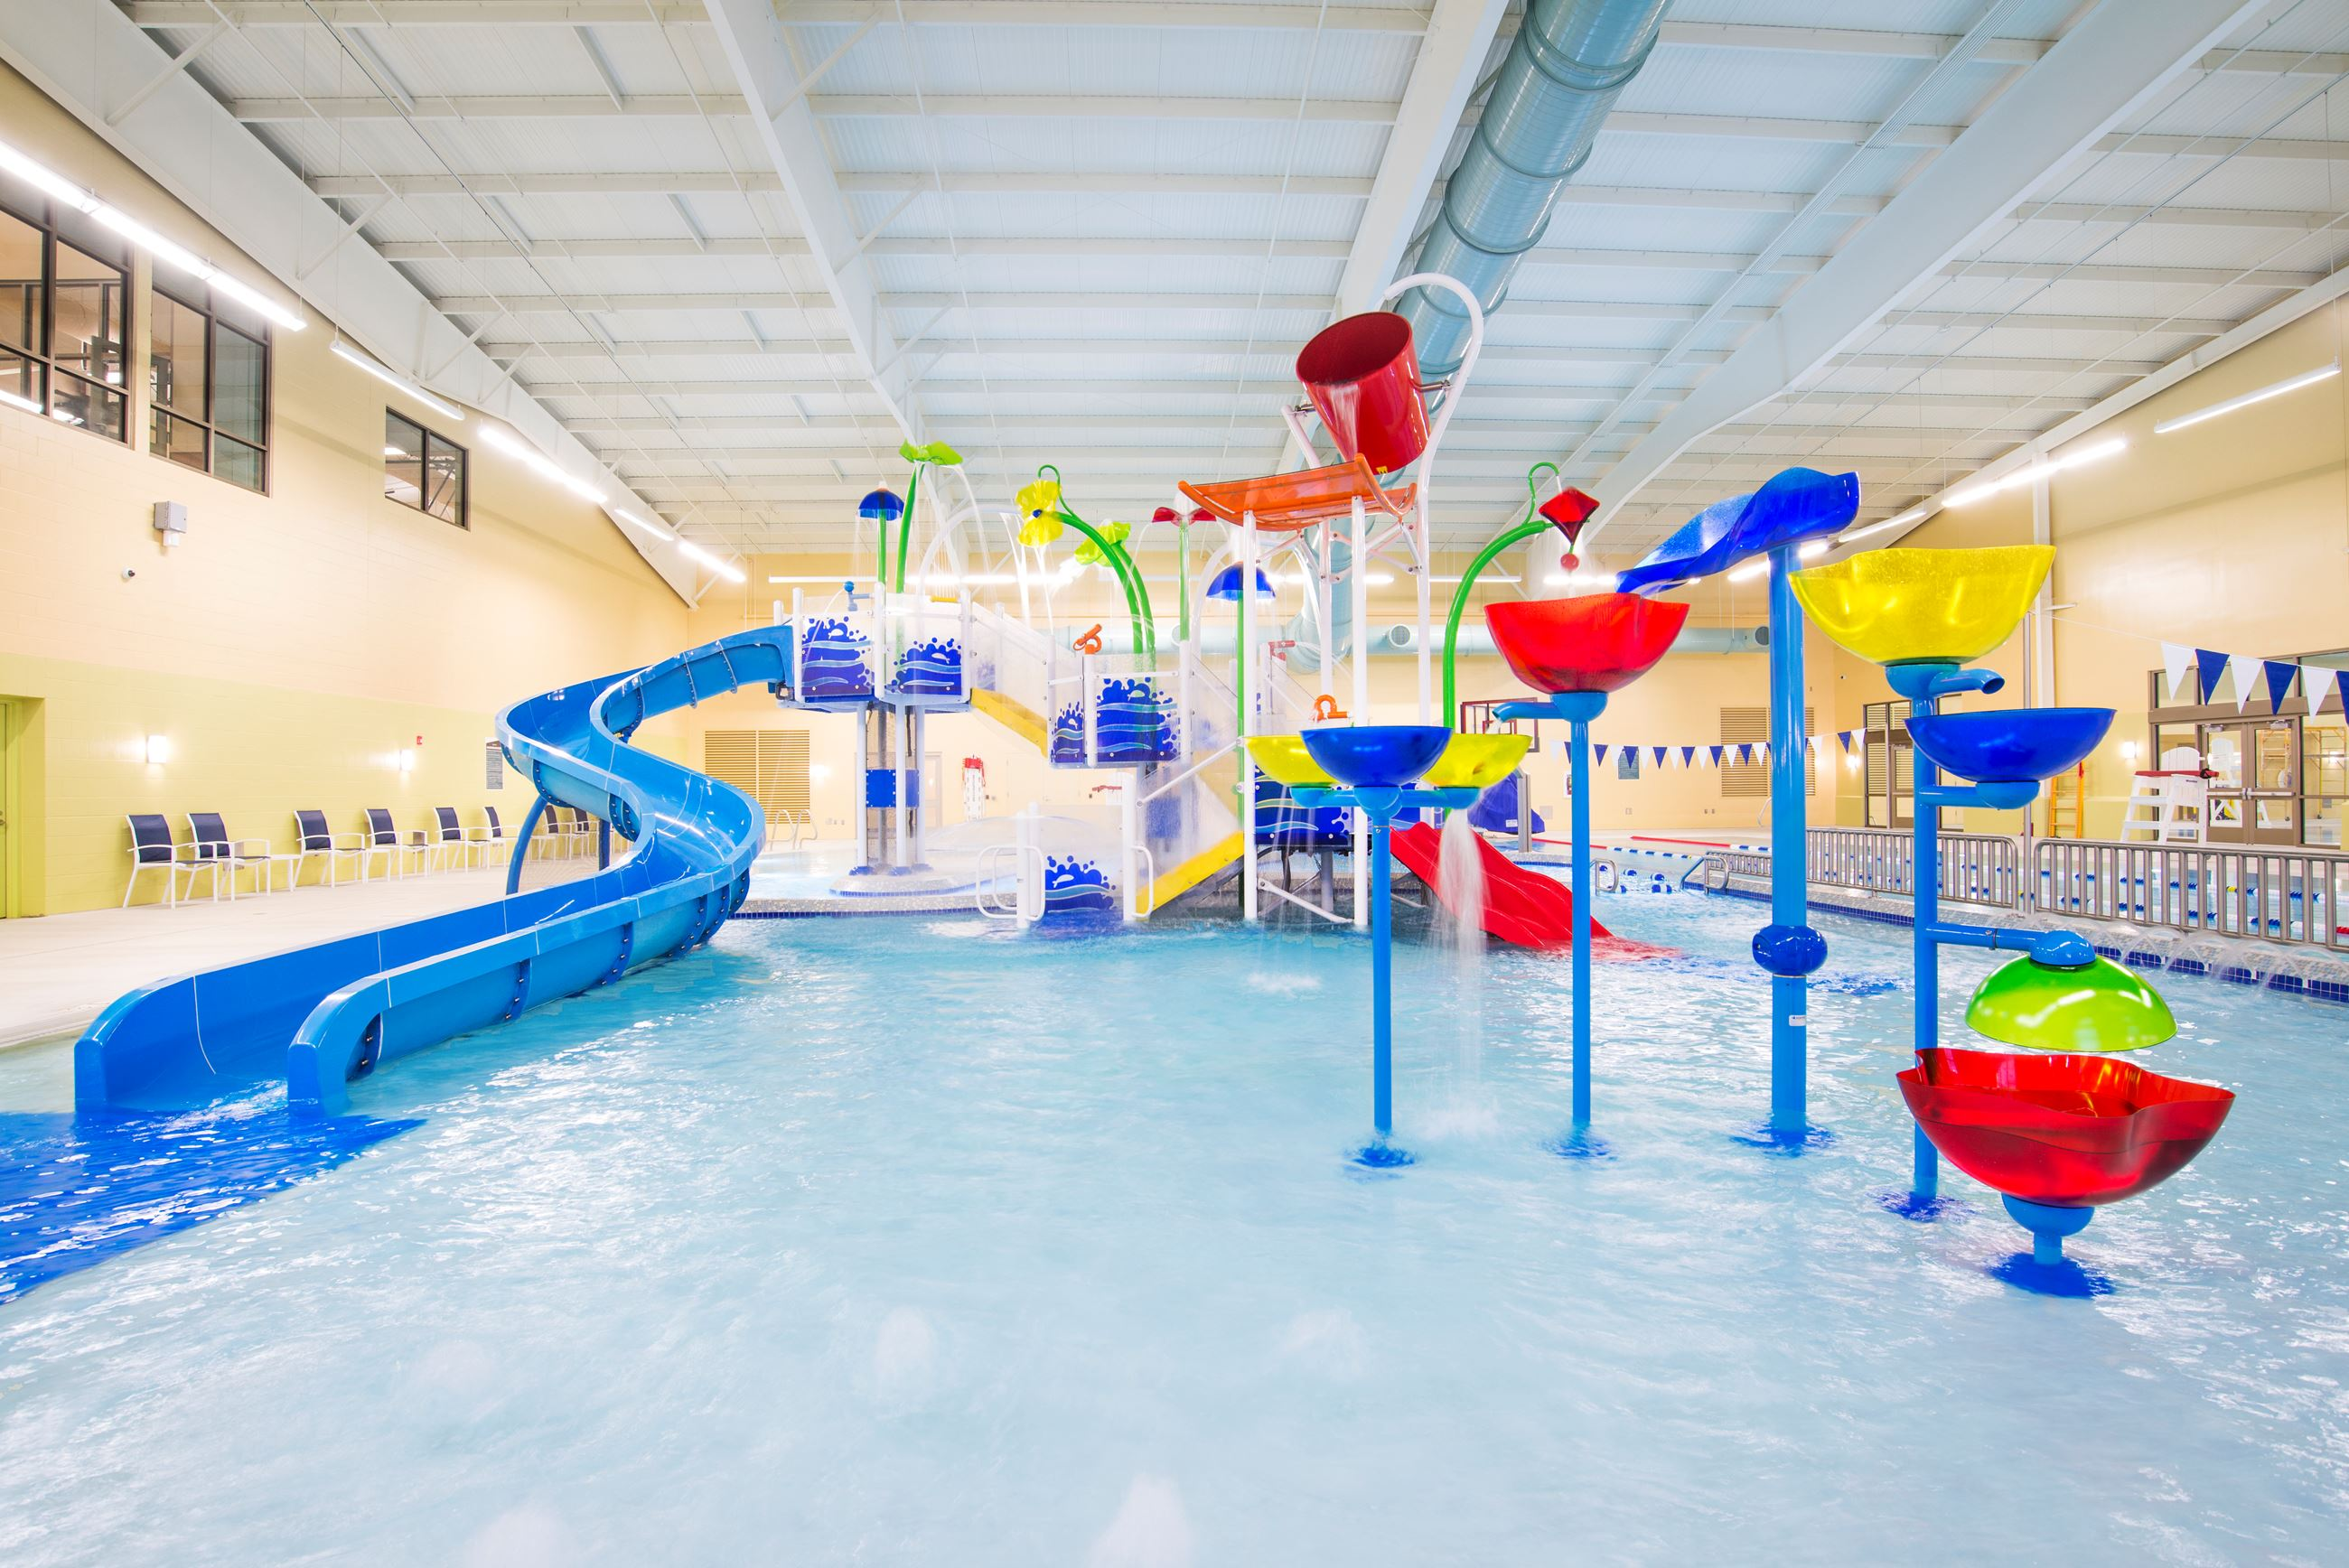 Image of an indoor pool with slides and play area